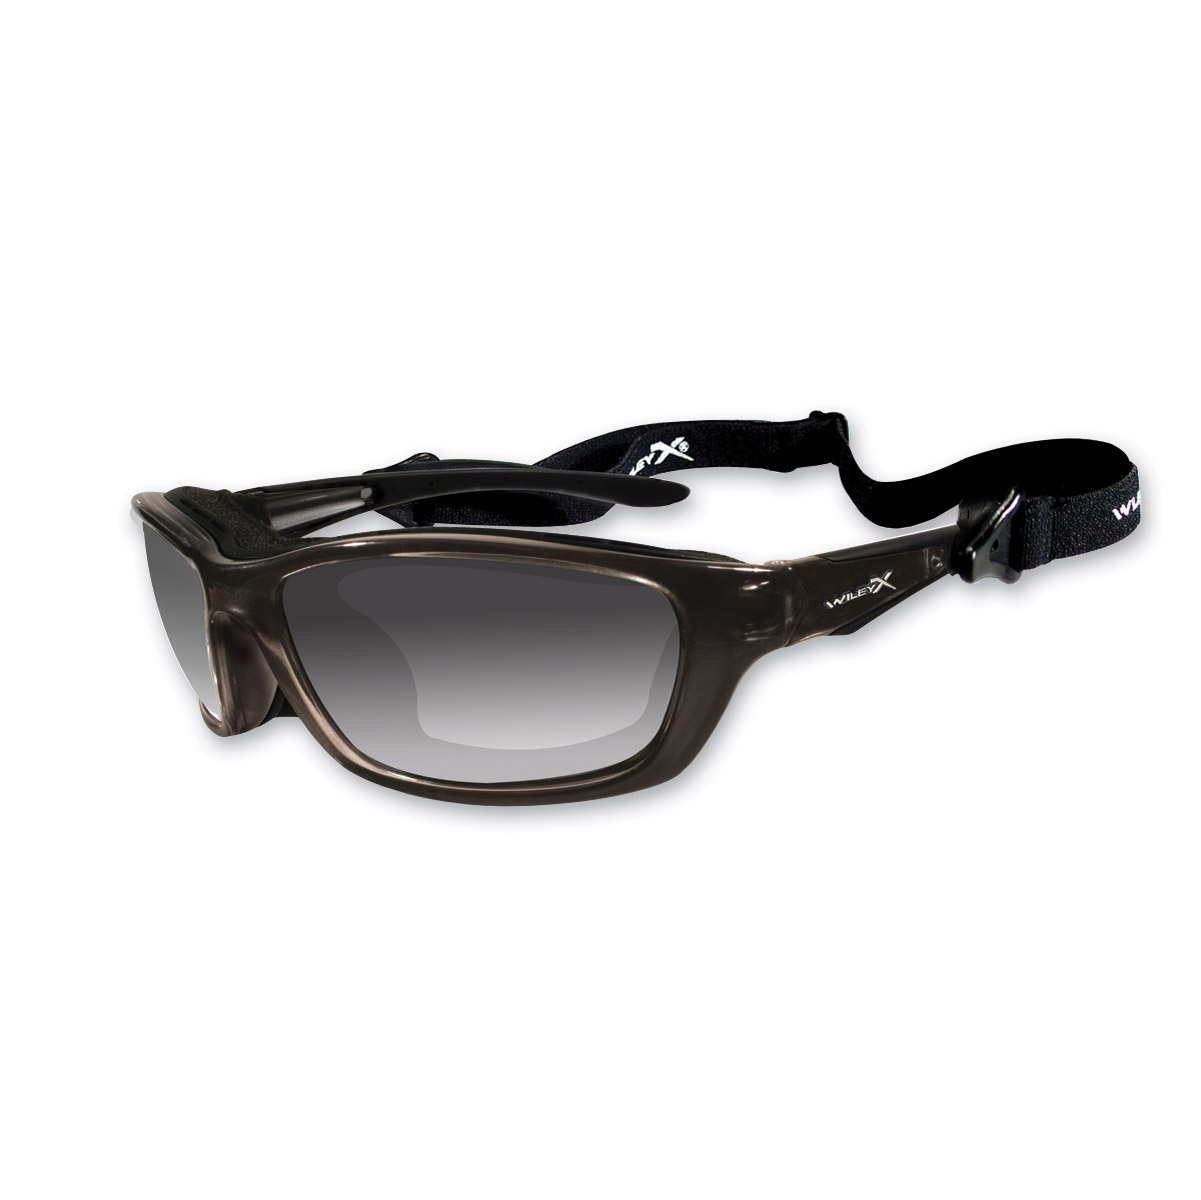 Wiley X Brick Goggles/Sunglasses with Light Adjusting Lenses